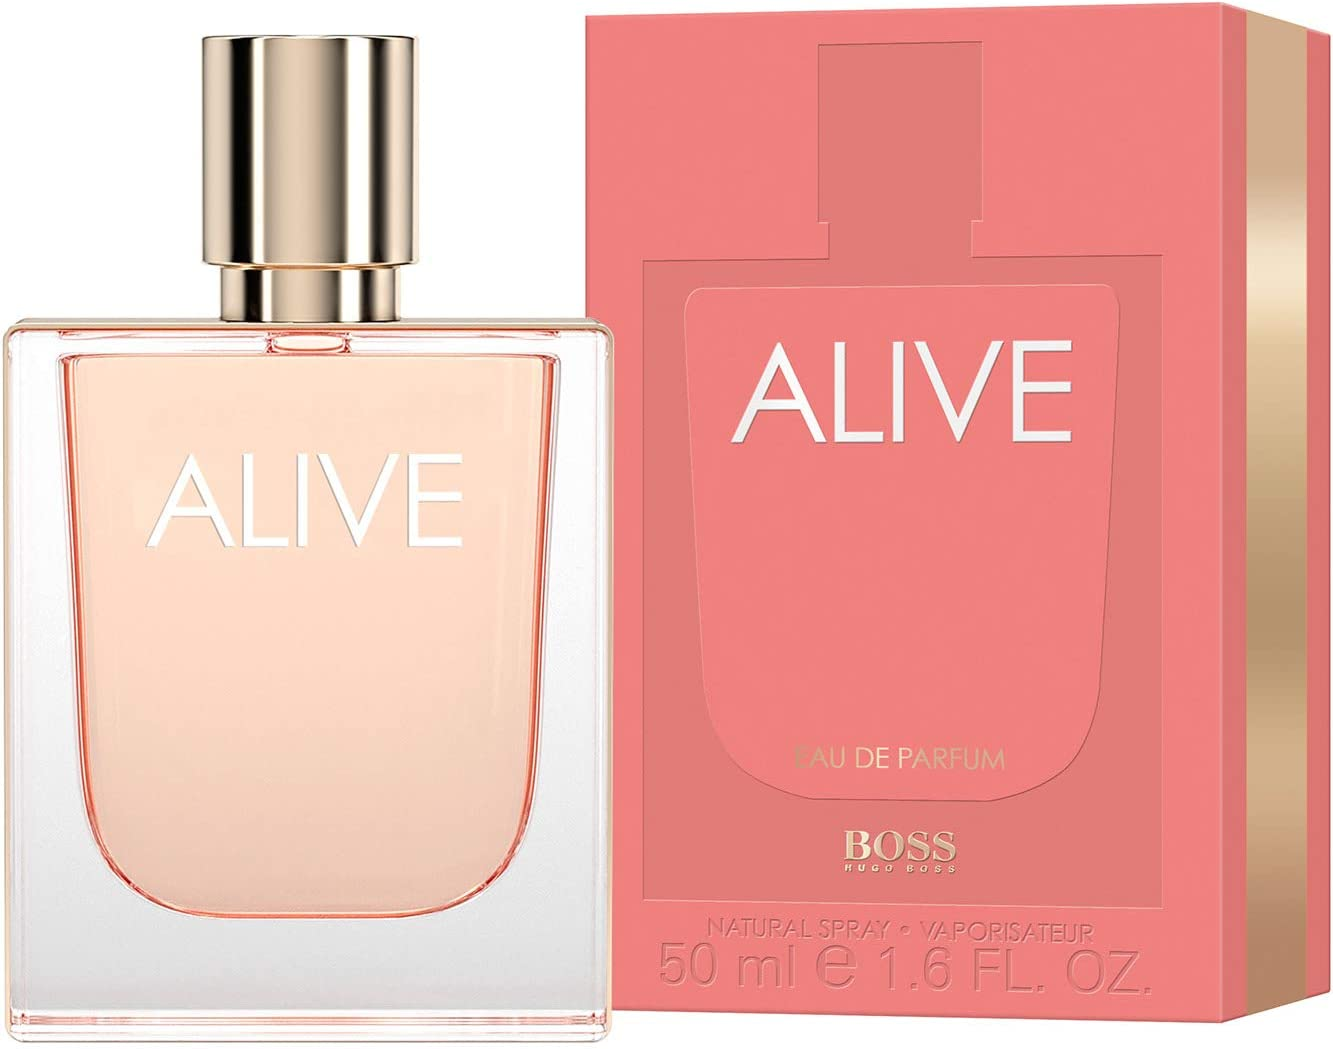 Boss Boss Alive Wom Edp 50V Exc. 50 ml: Amazon.es: Belleza